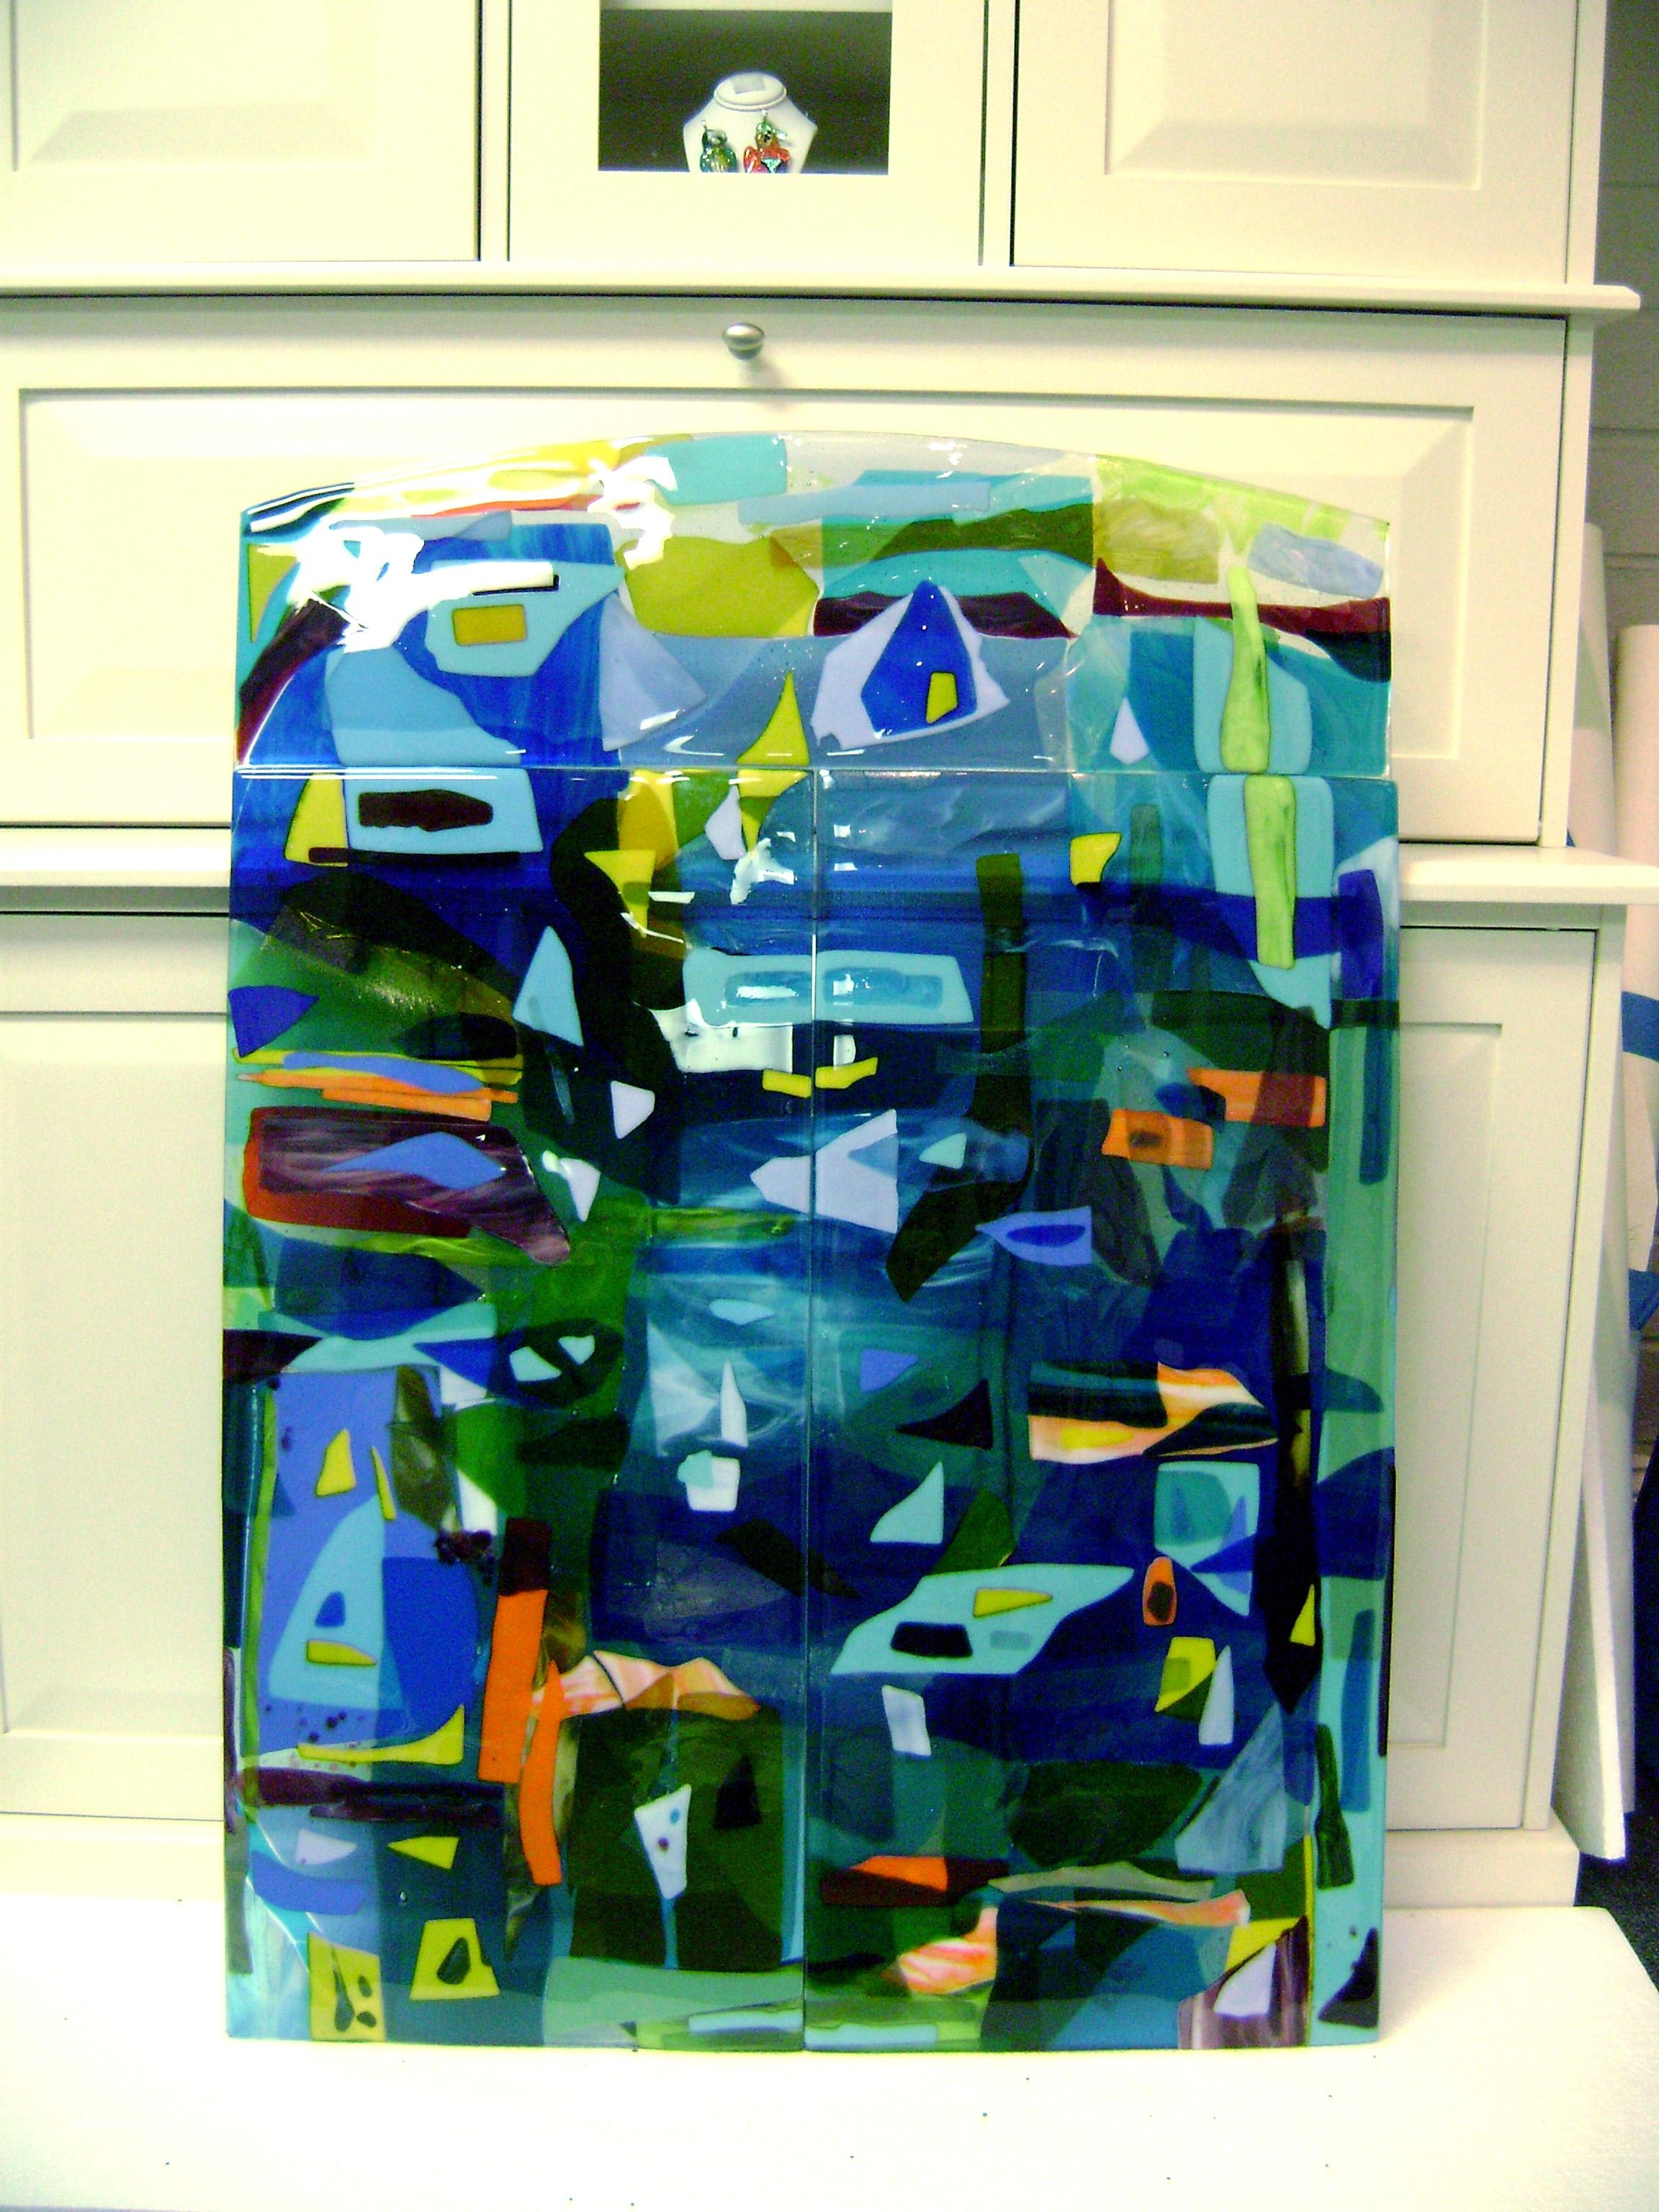 Colorful Fused Glass Wall Art Panel | Designer Glass Mosaics Throughout Fused Glass Wall Art Panels (View 9 of 20)